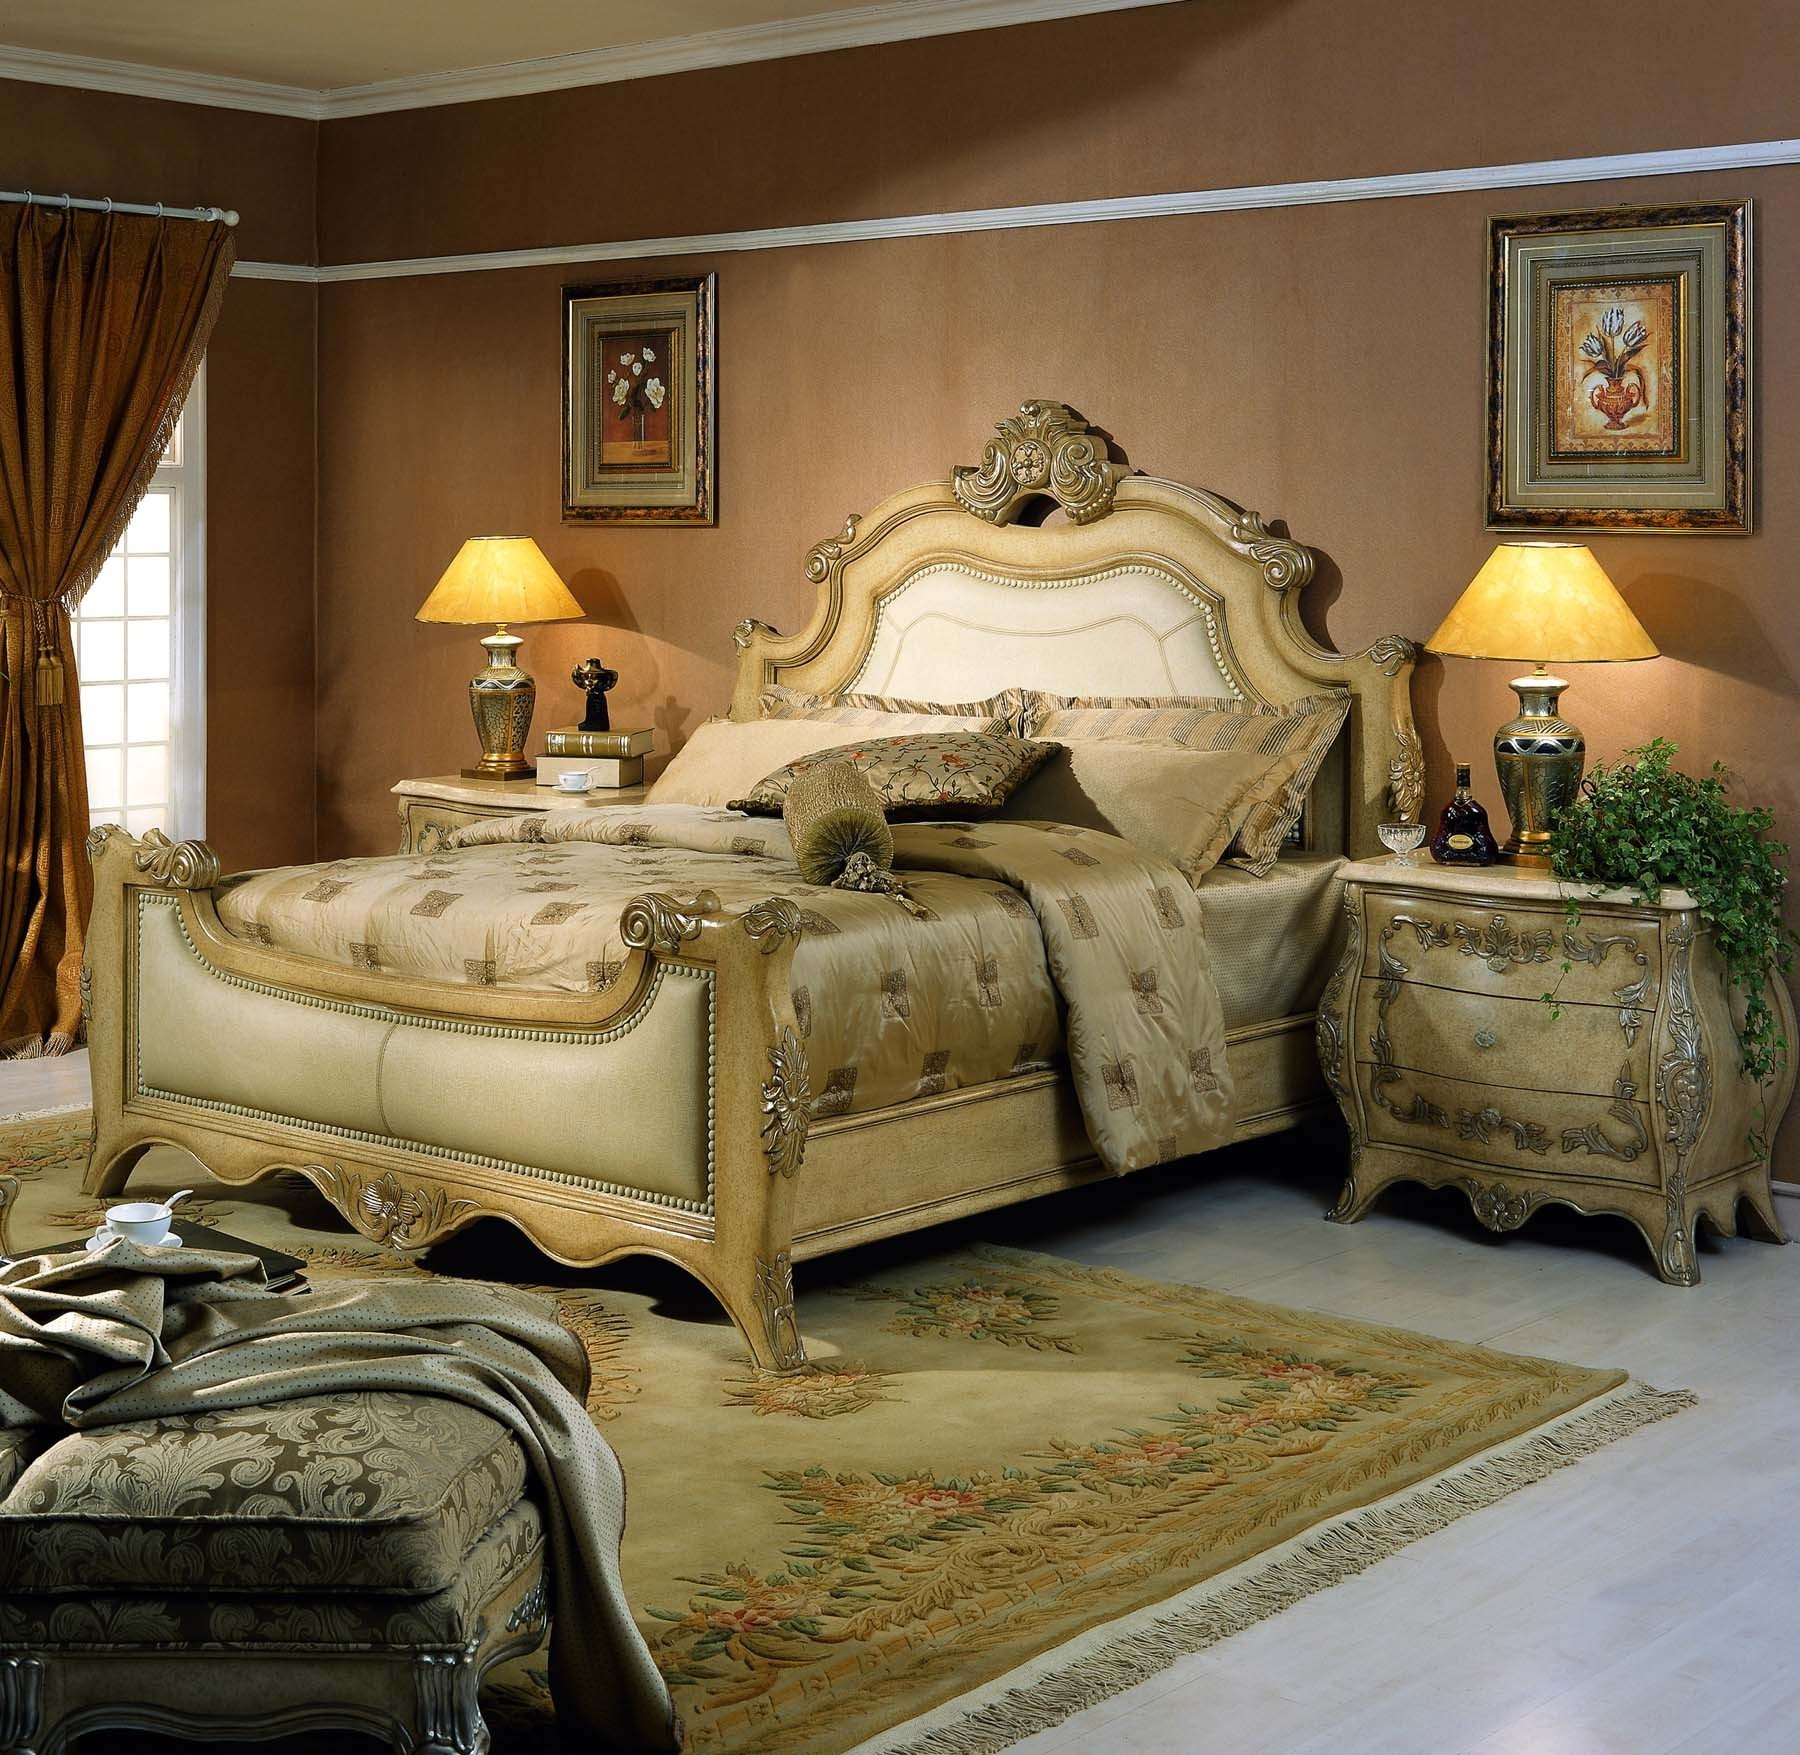 Sonoma Bed shown in Antique Bisque finish.